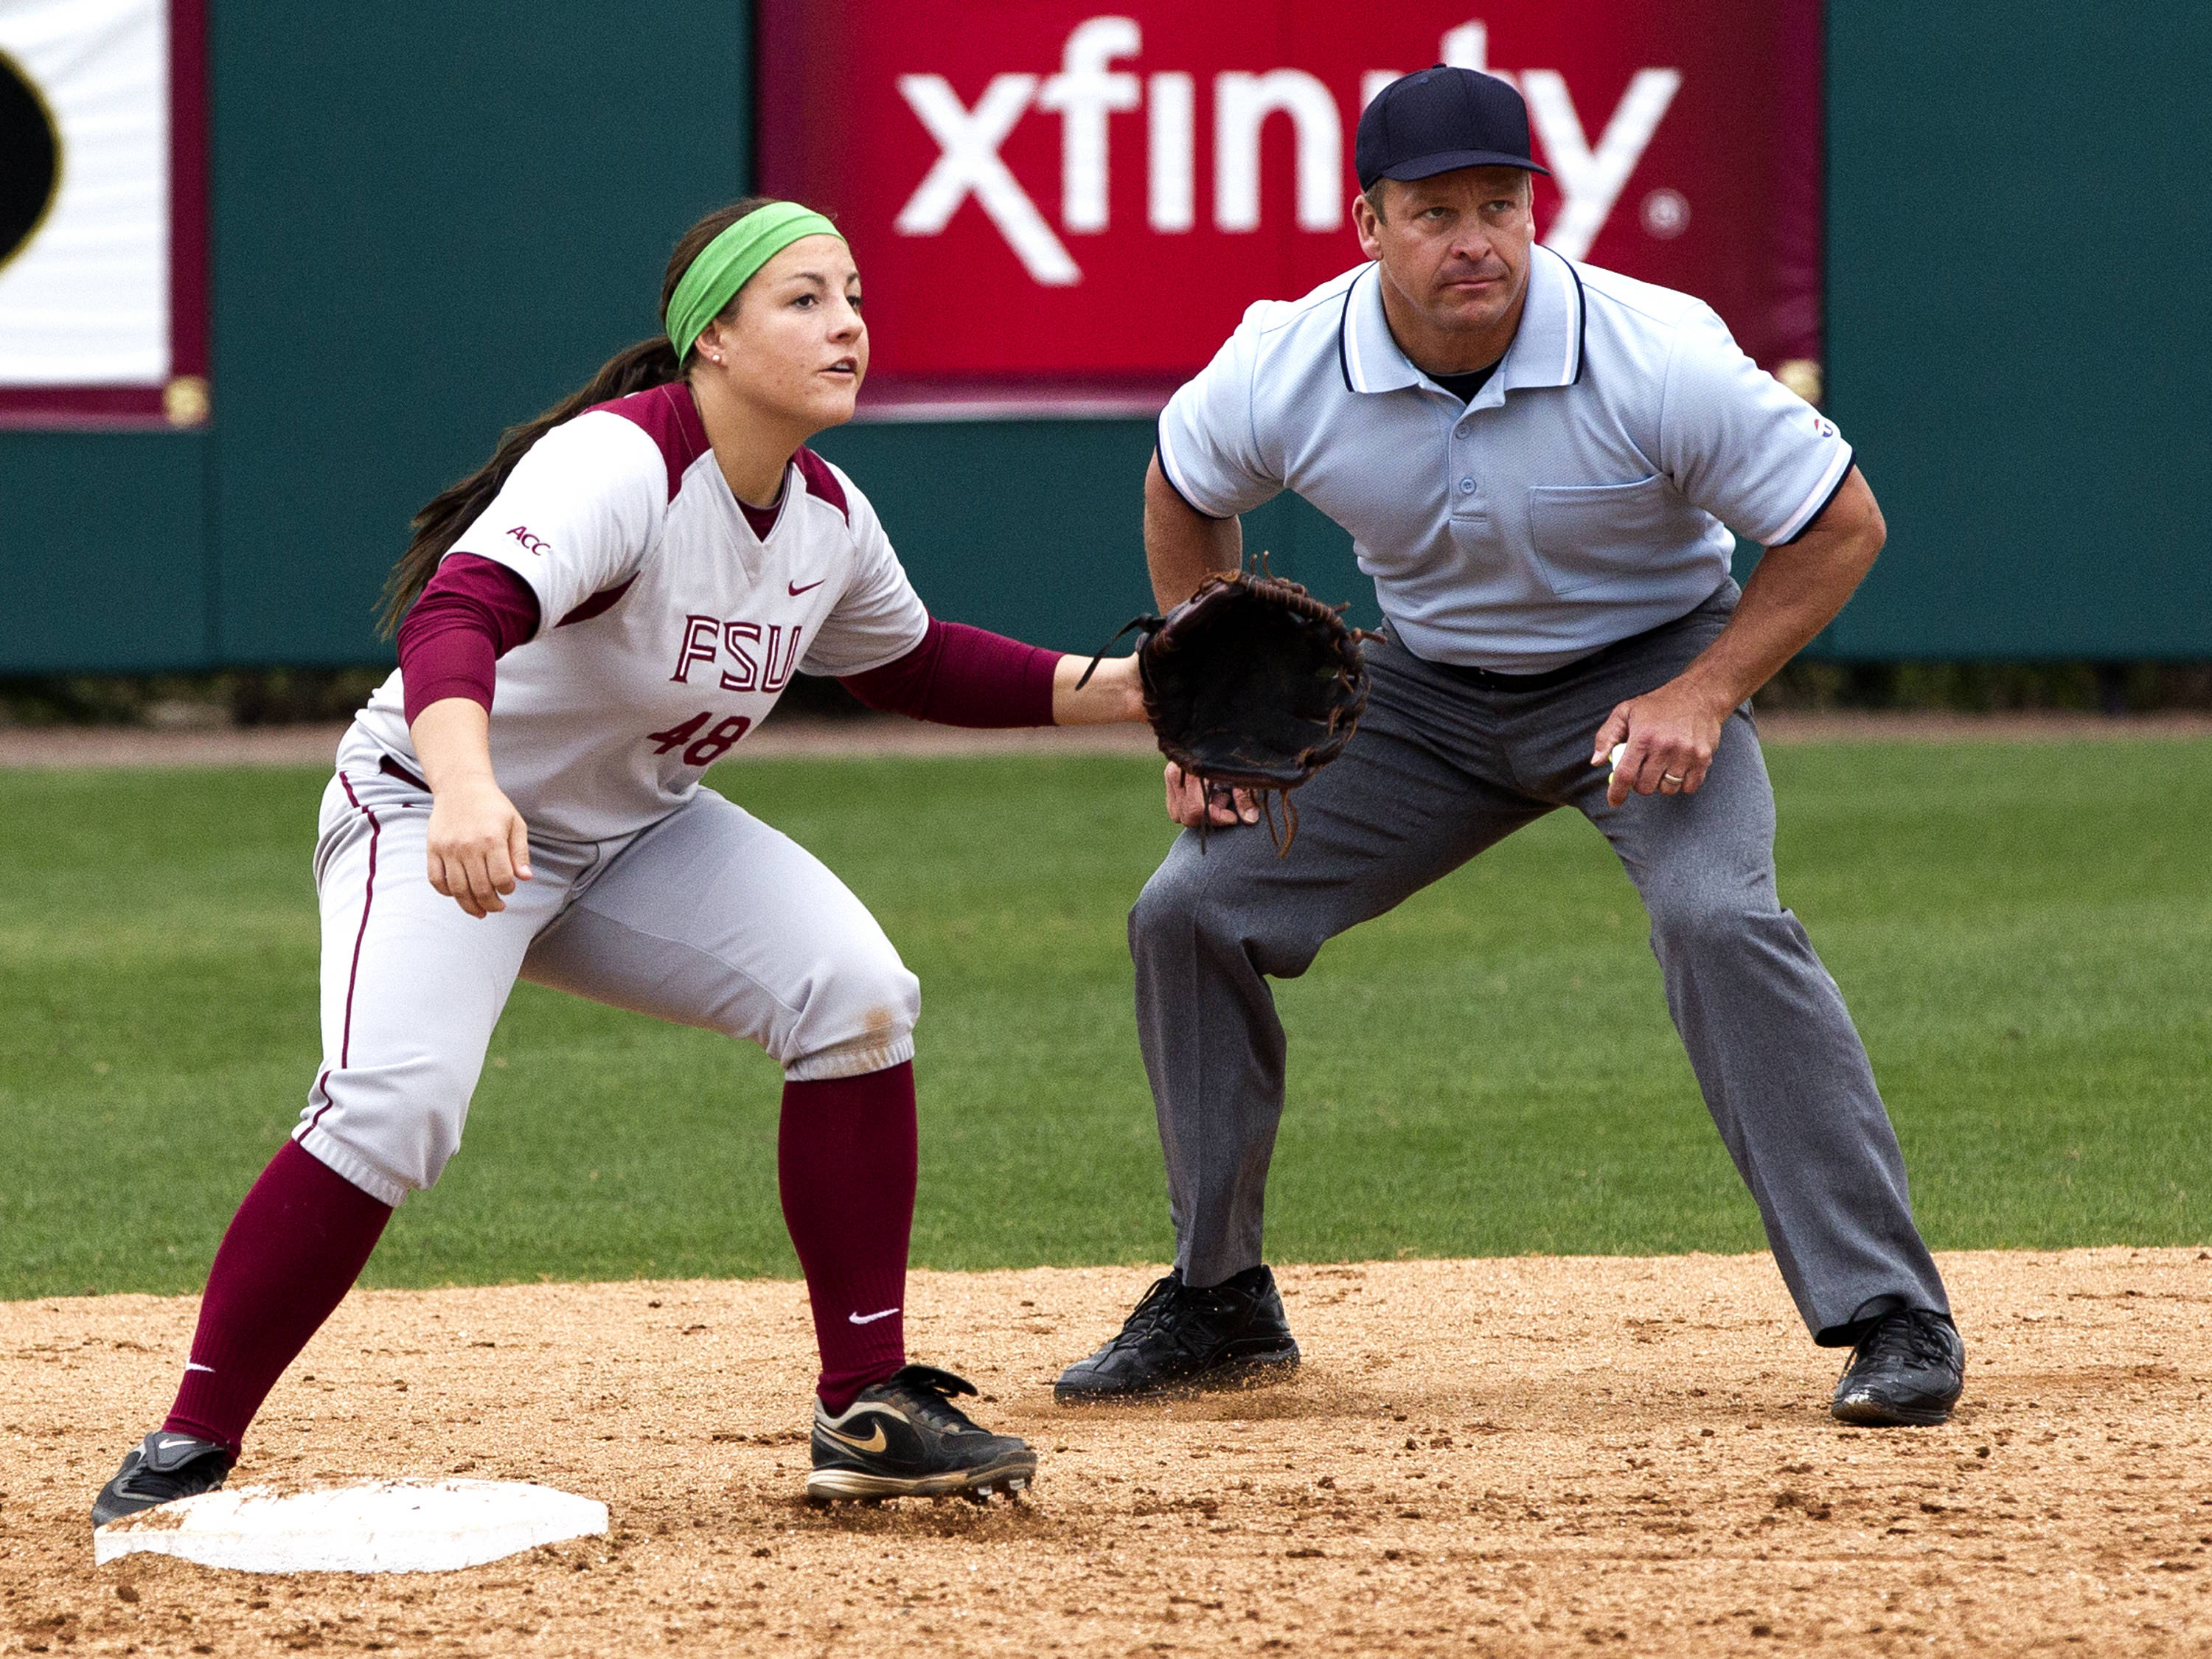 Kaitlin Allen (48), FSU vs Minnesota, 03/17/13. (Photo by Steve Musco)